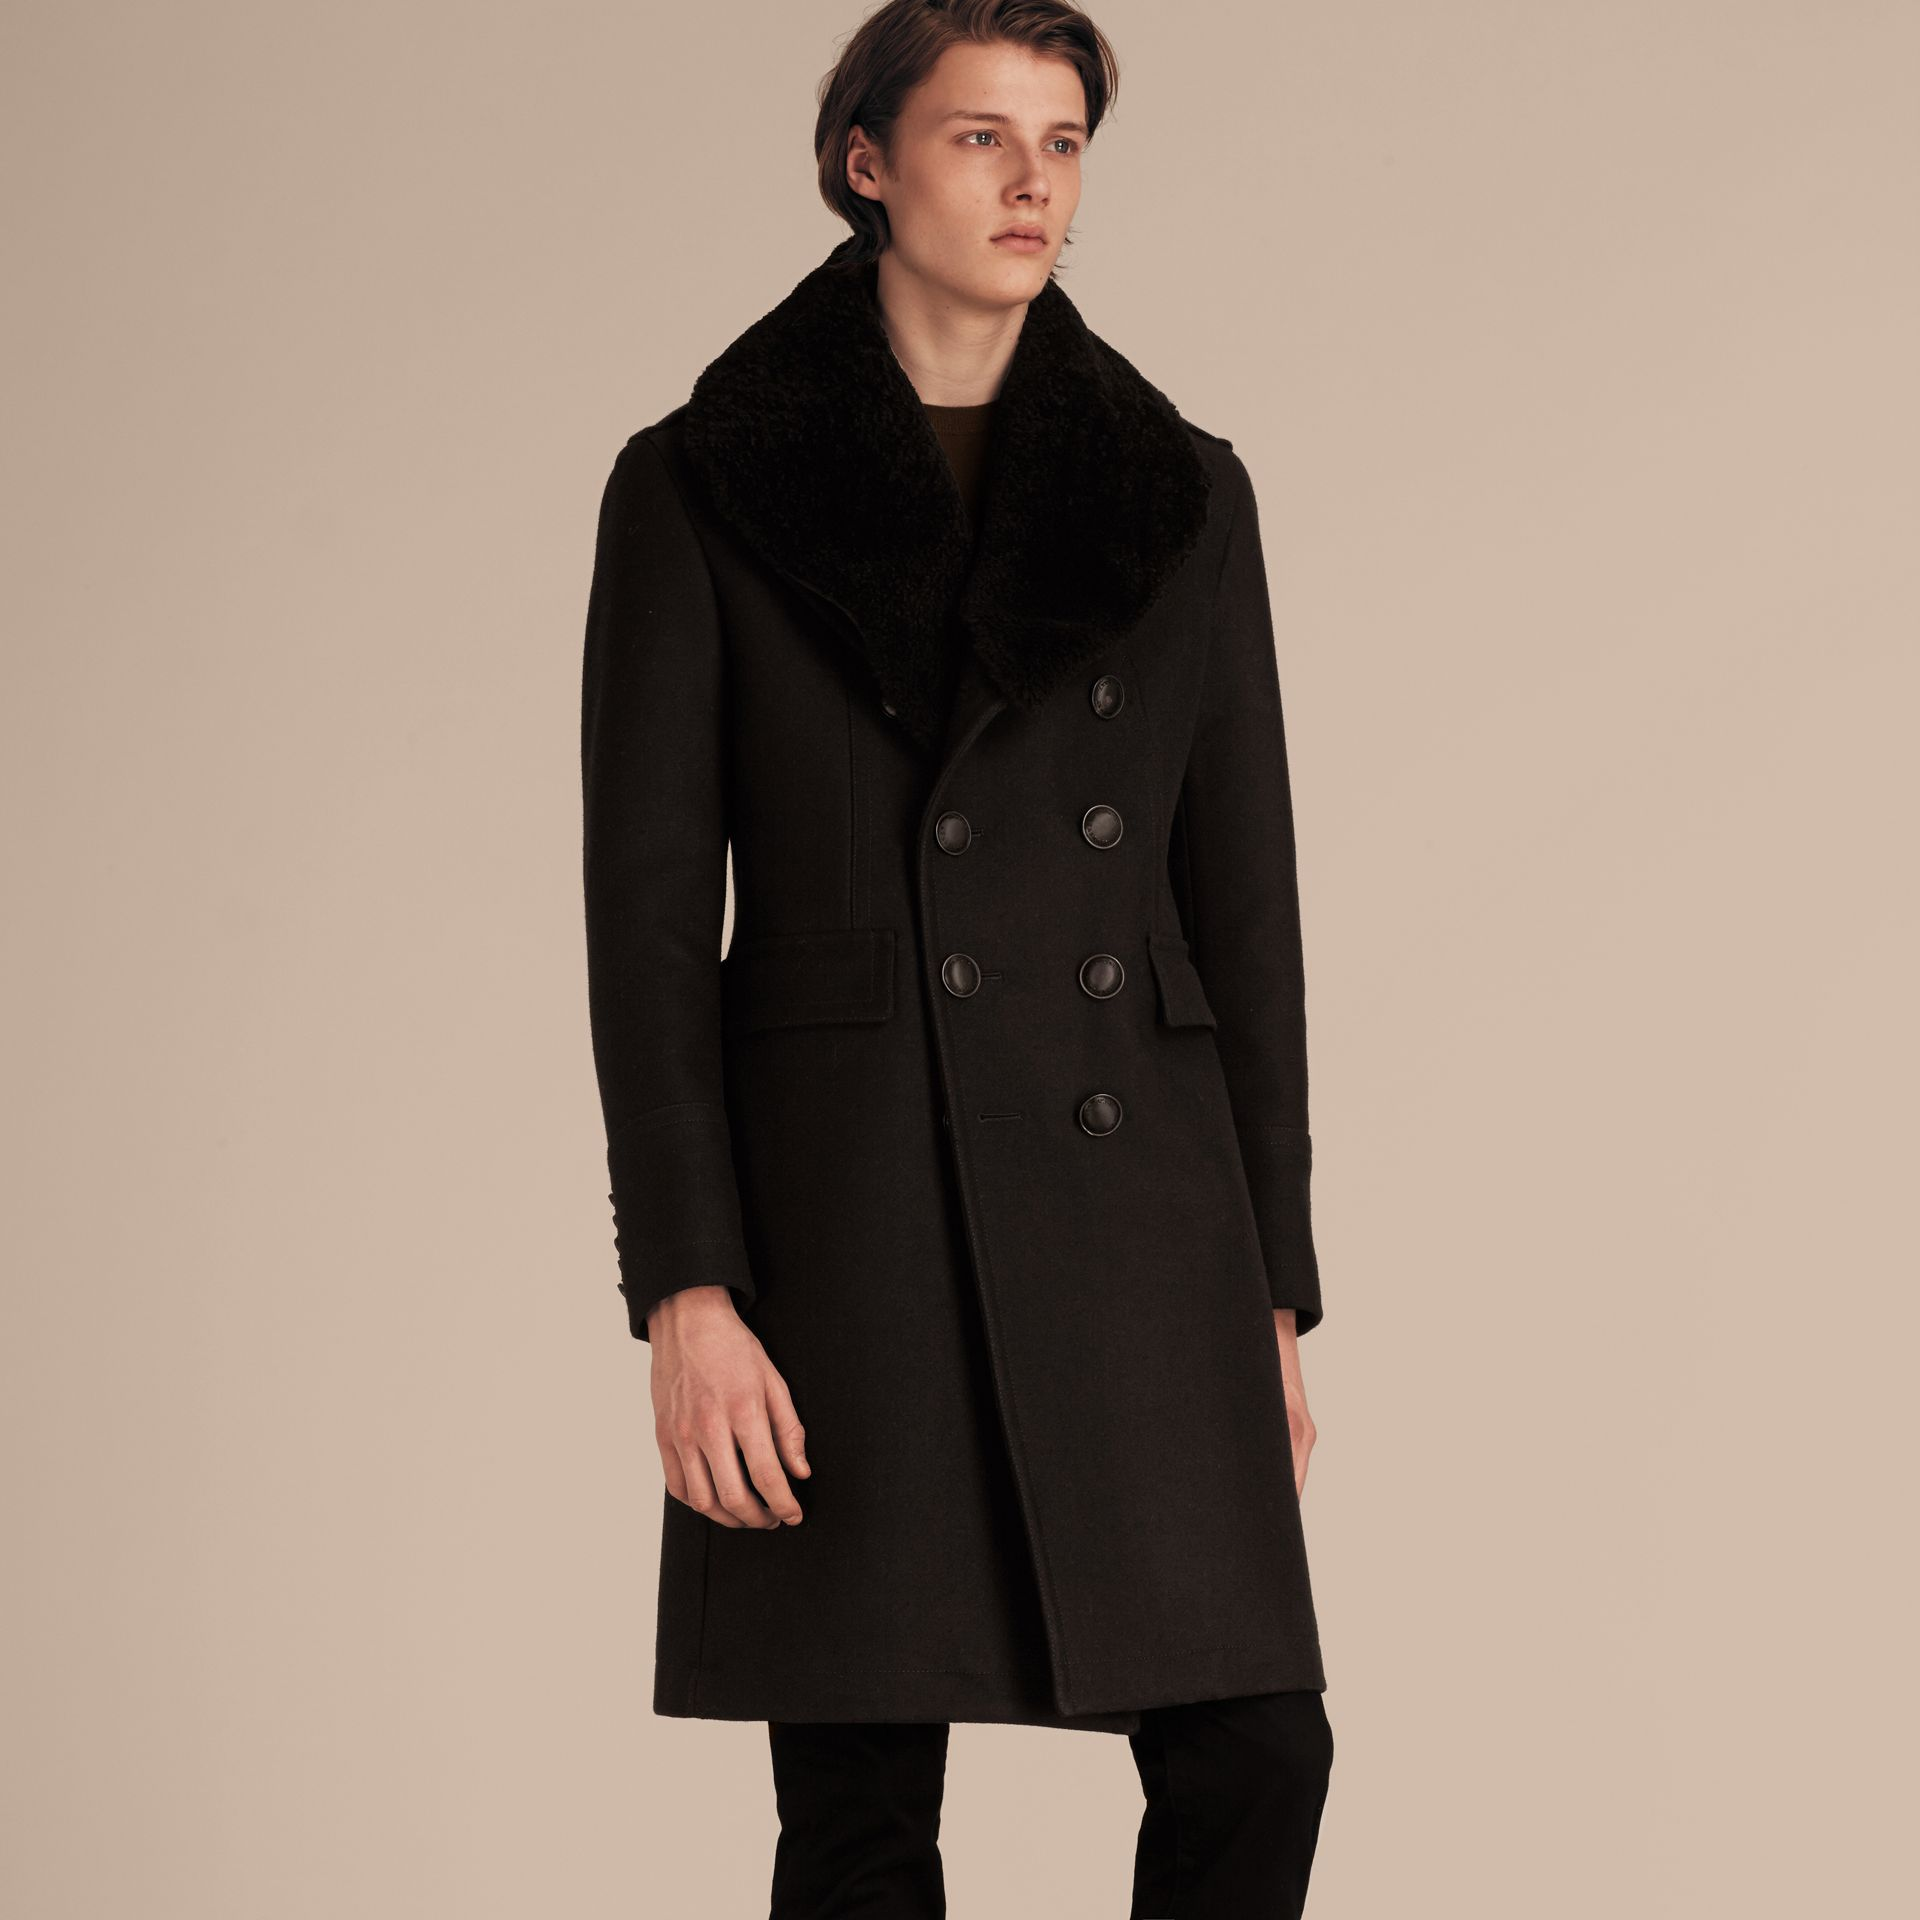 Black Technical Wool Greatcoat with Detachable Shearling Collar - gallery image 8